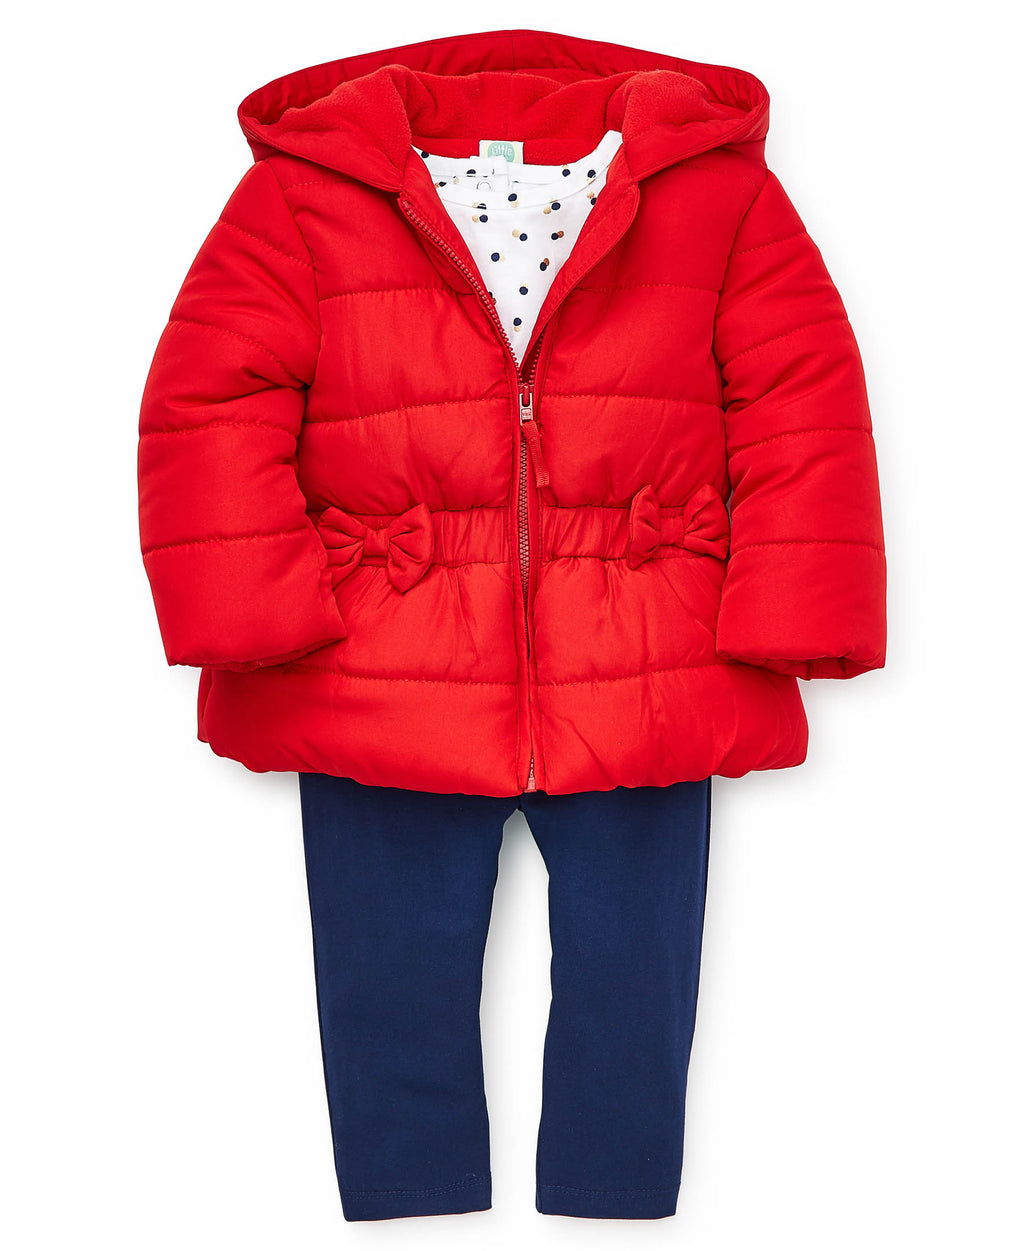 Red Puff Jacket Set